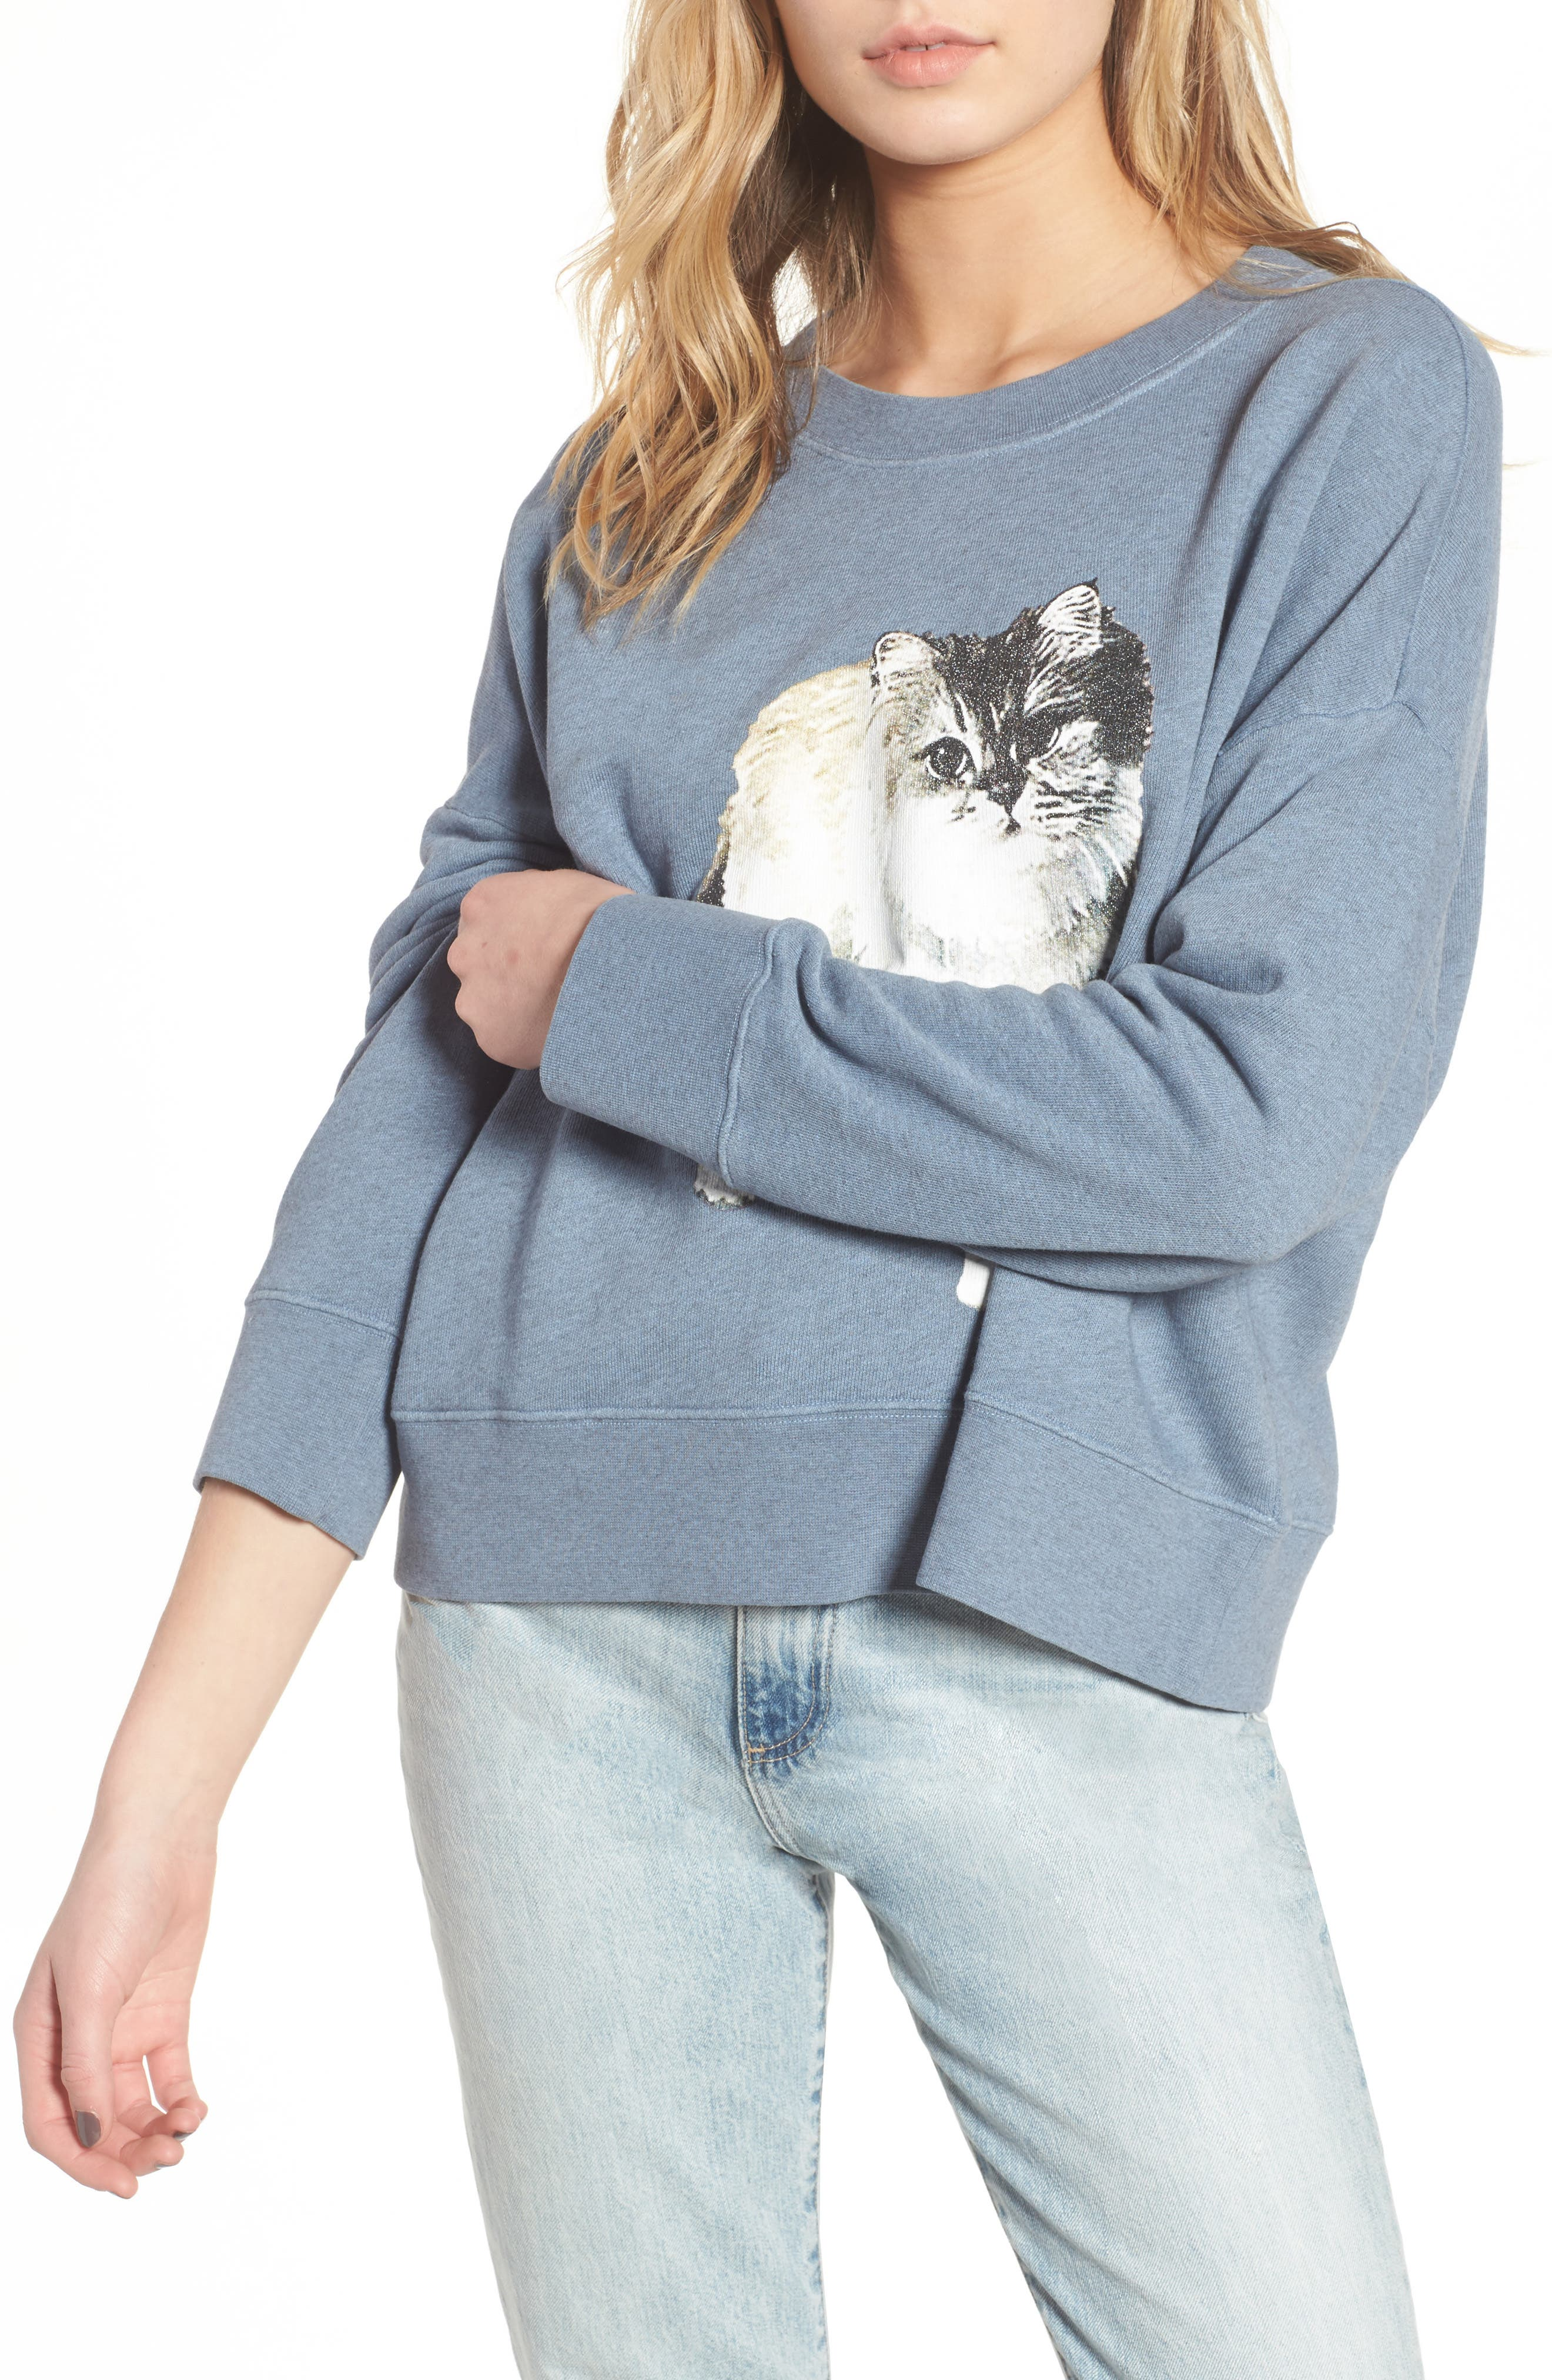 Kyoto Sweatshirt,                             Main thumbnail 1, color,                             Blue